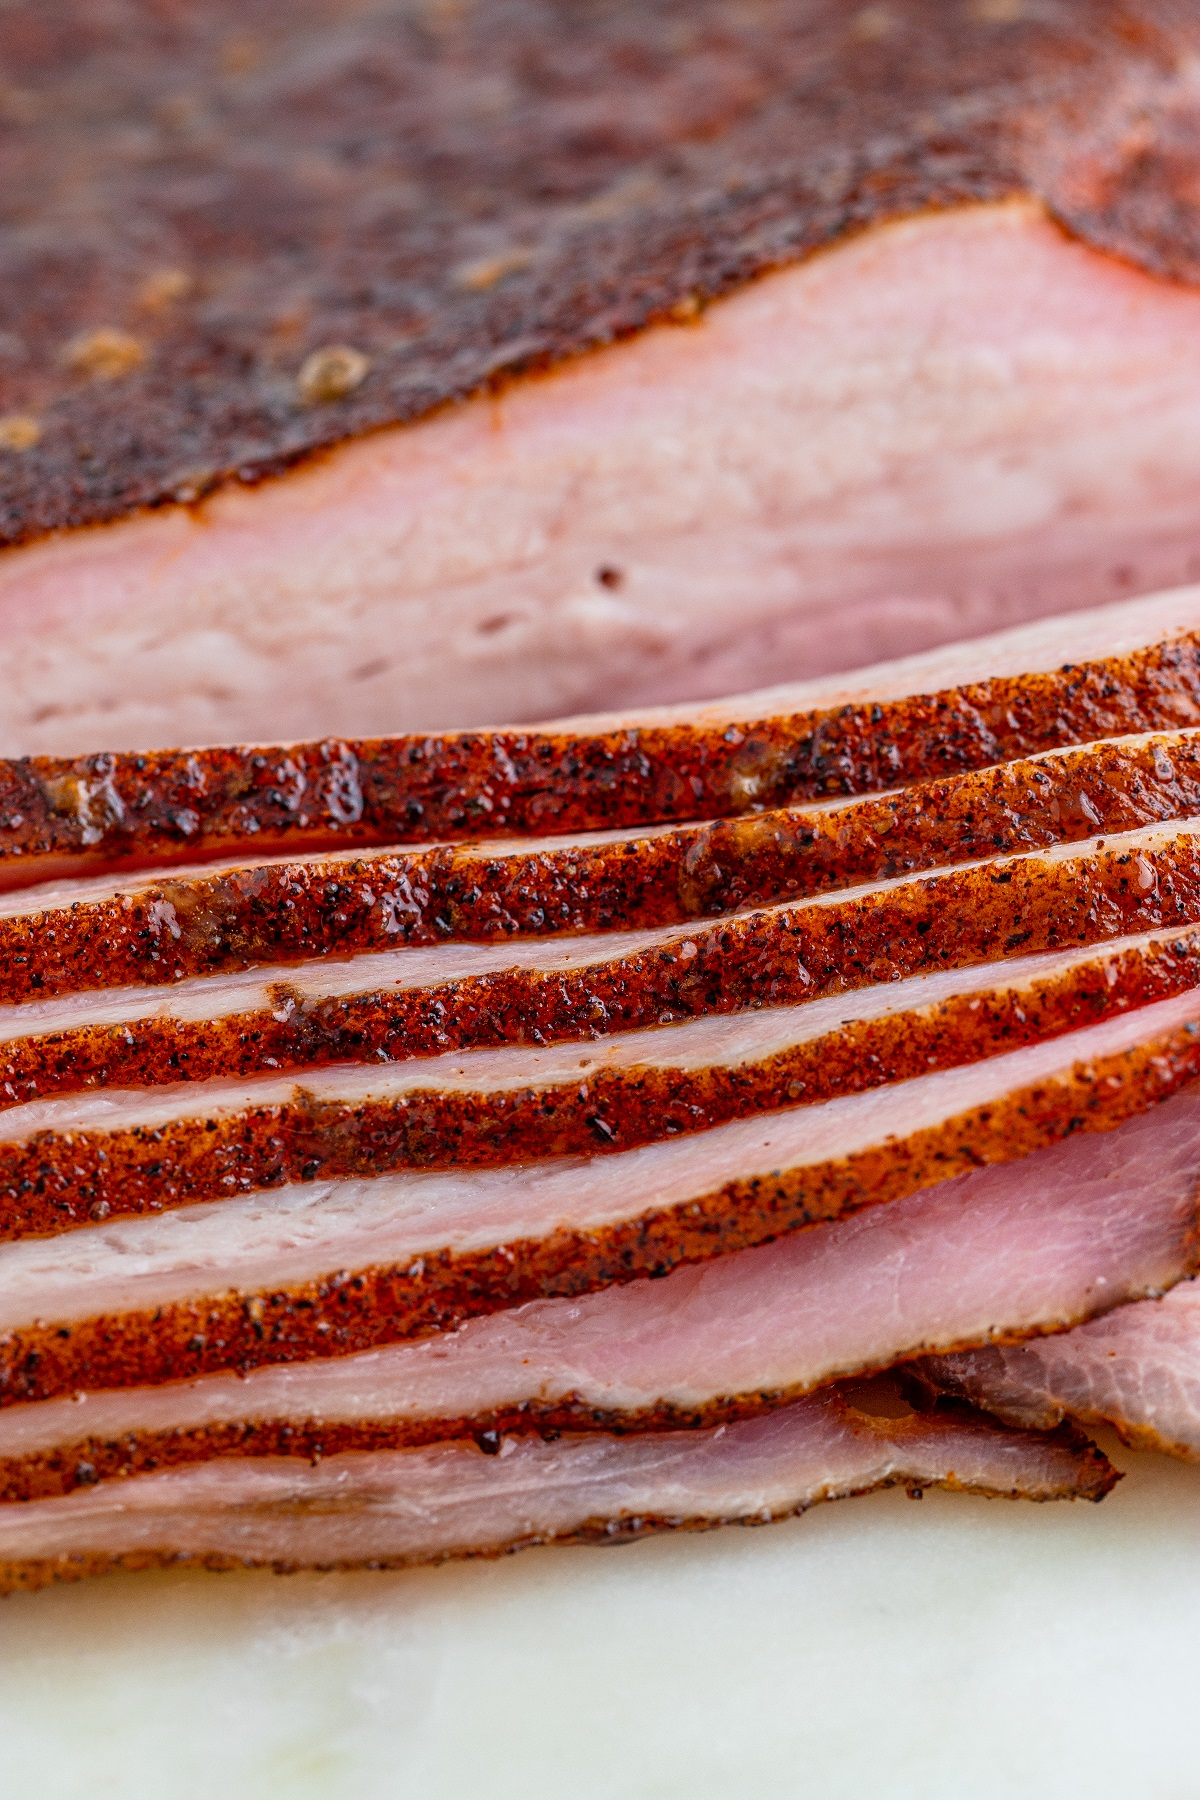 Close up picture of slices of smoked pork belly and the dry rub crust.